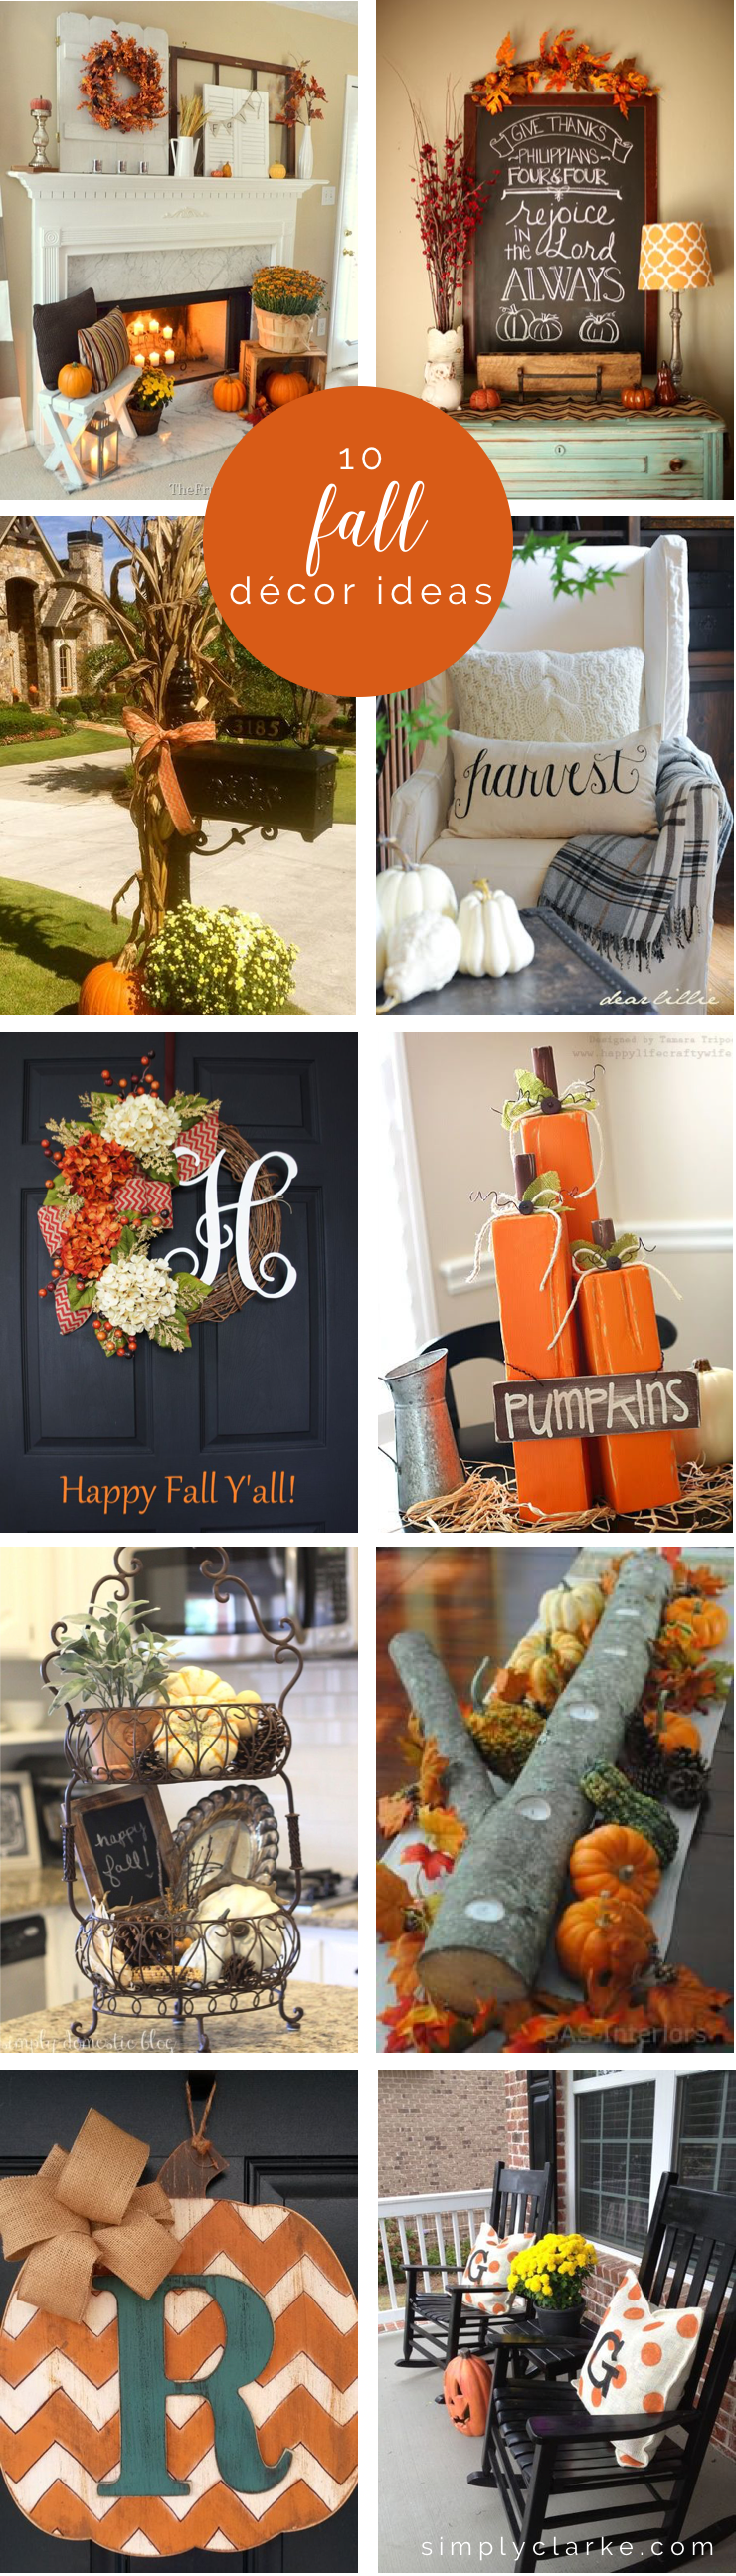 10 Fall Decor Ideas Simply Clarke